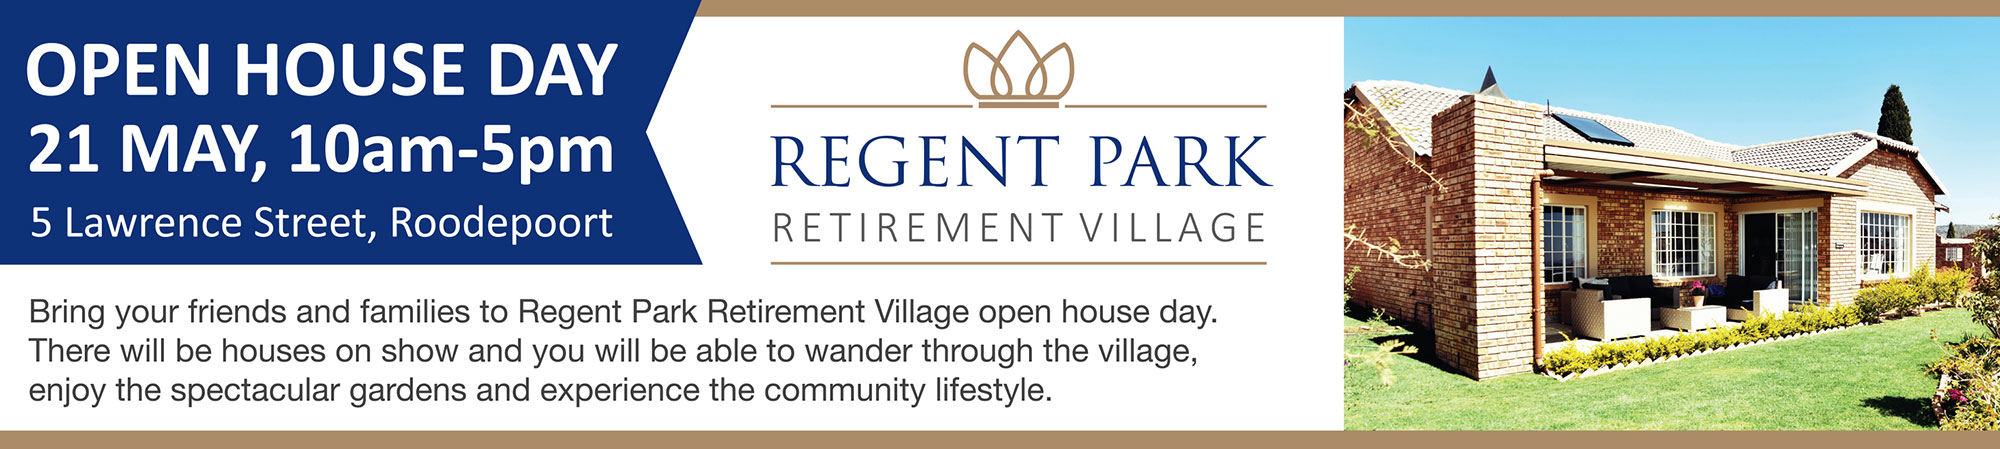 Regent Park Retirement Village Open Day